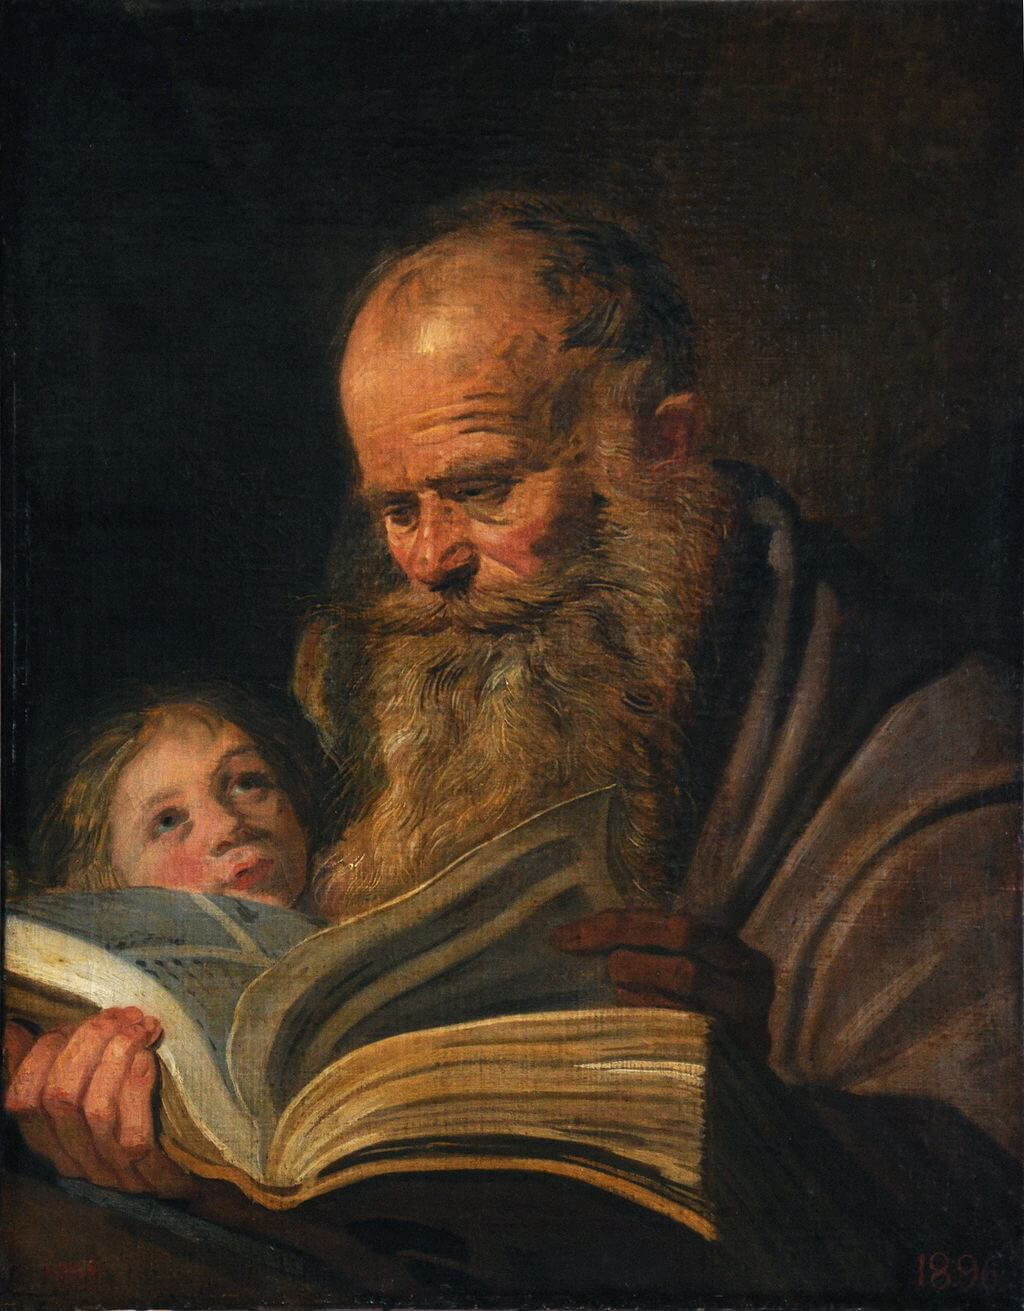 St. Matthew by Frans Hals in the Odessa Museum of Western and Eastern Art